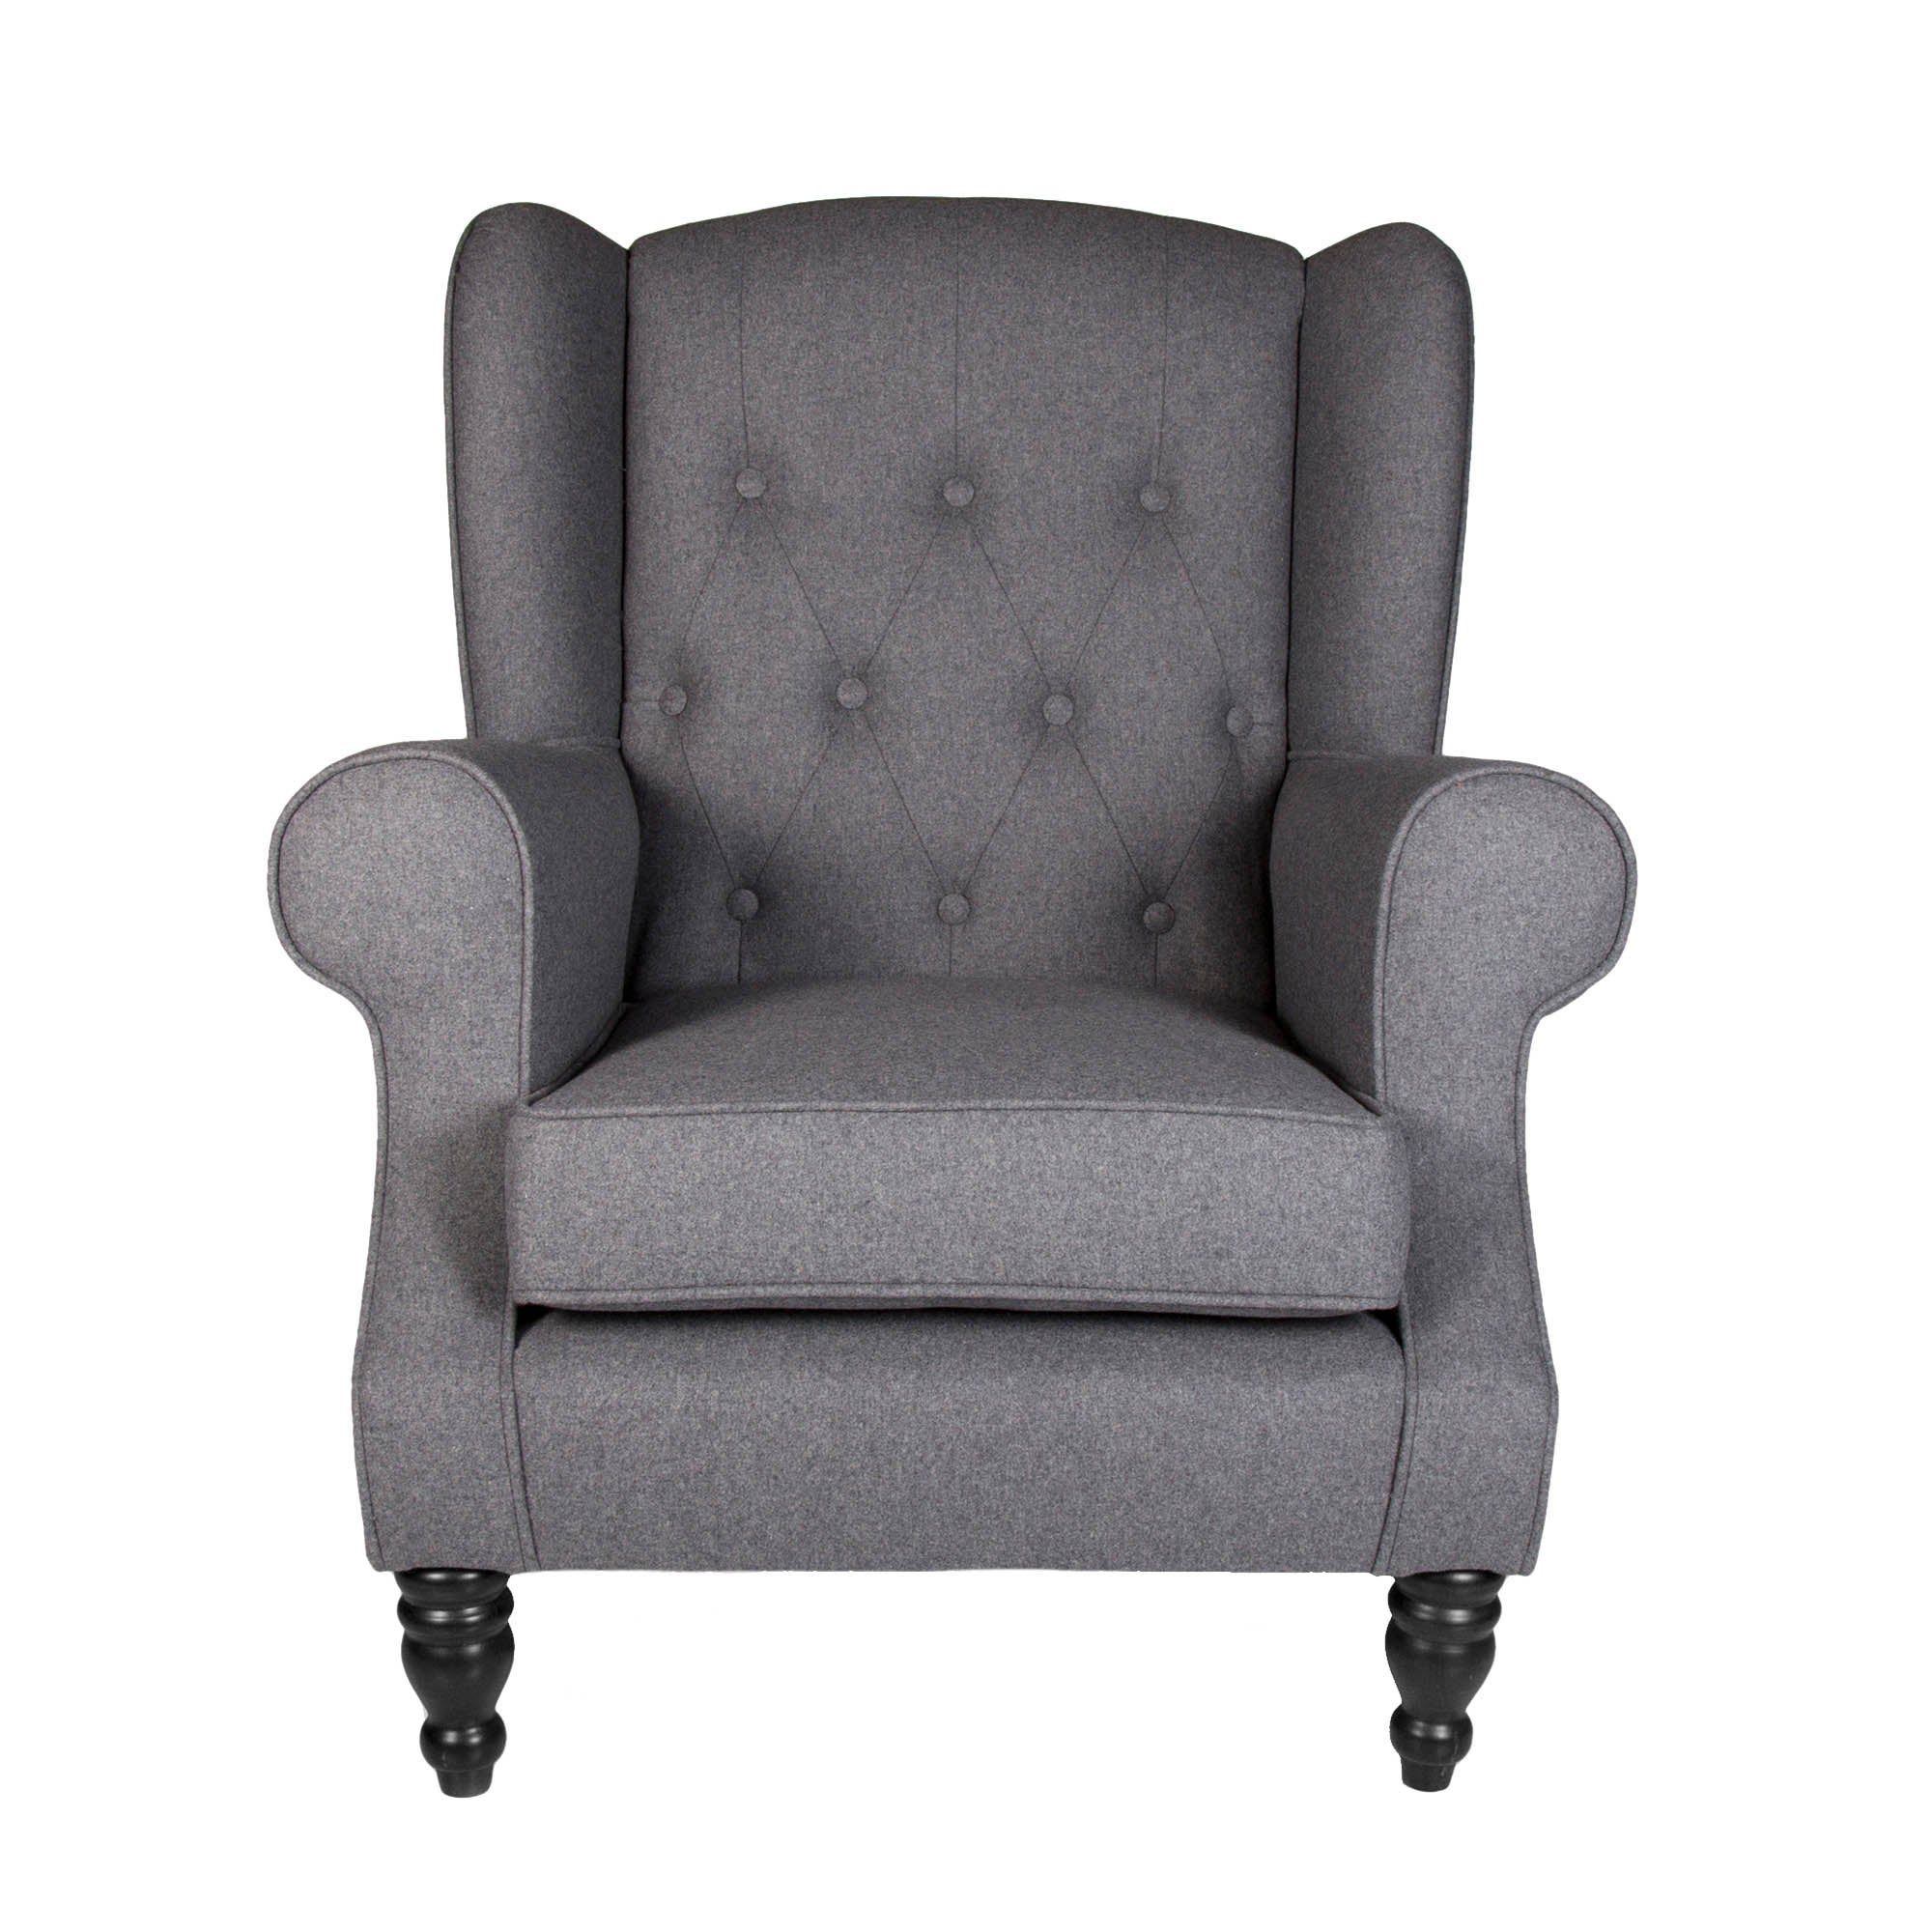 Shop all bedroom furniture  middot  Chartwell Charcoal Button Back Armchair. Bedroom Chairs   Dunelm